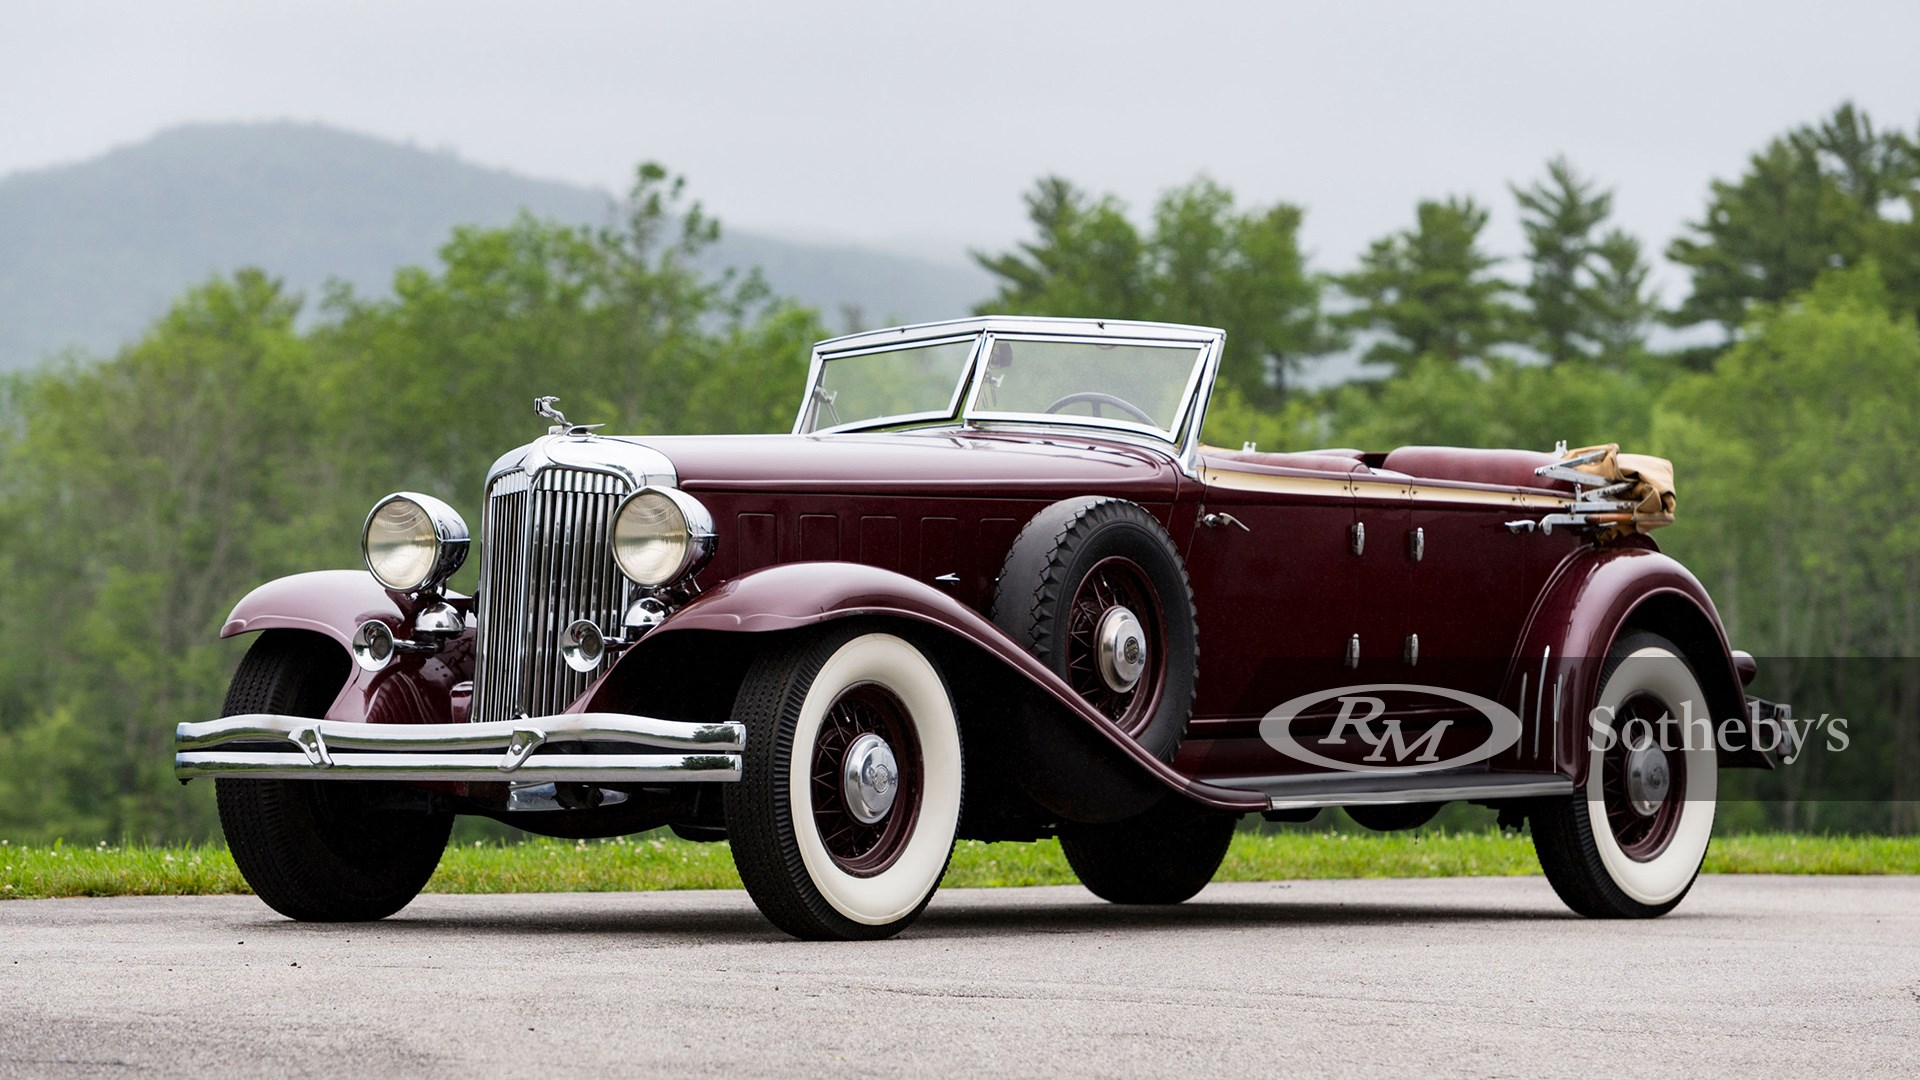 1932 Chrysler CL Imperial Dual-Windshield Phaeton by LeBaron available at RM Sotheby's Amelia Island Live Auction 2021